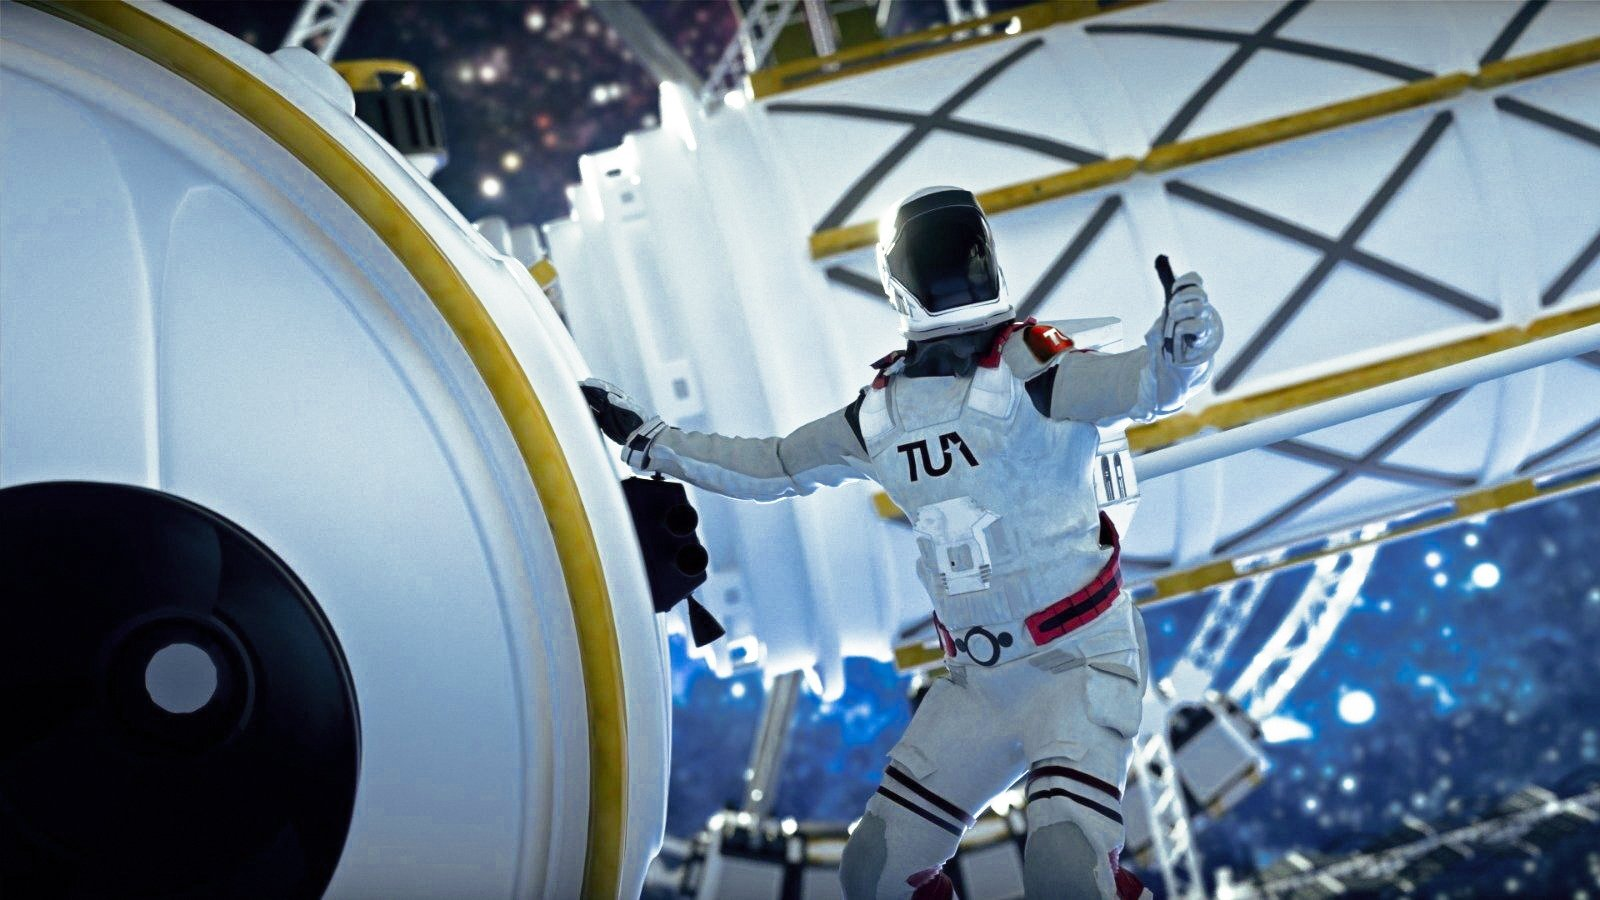 A logo of the Turkish Space Agency is seen on an astronaut in this illustration photo, Feb. 10, 2021. (Courtesy of Turkish Space Agency)